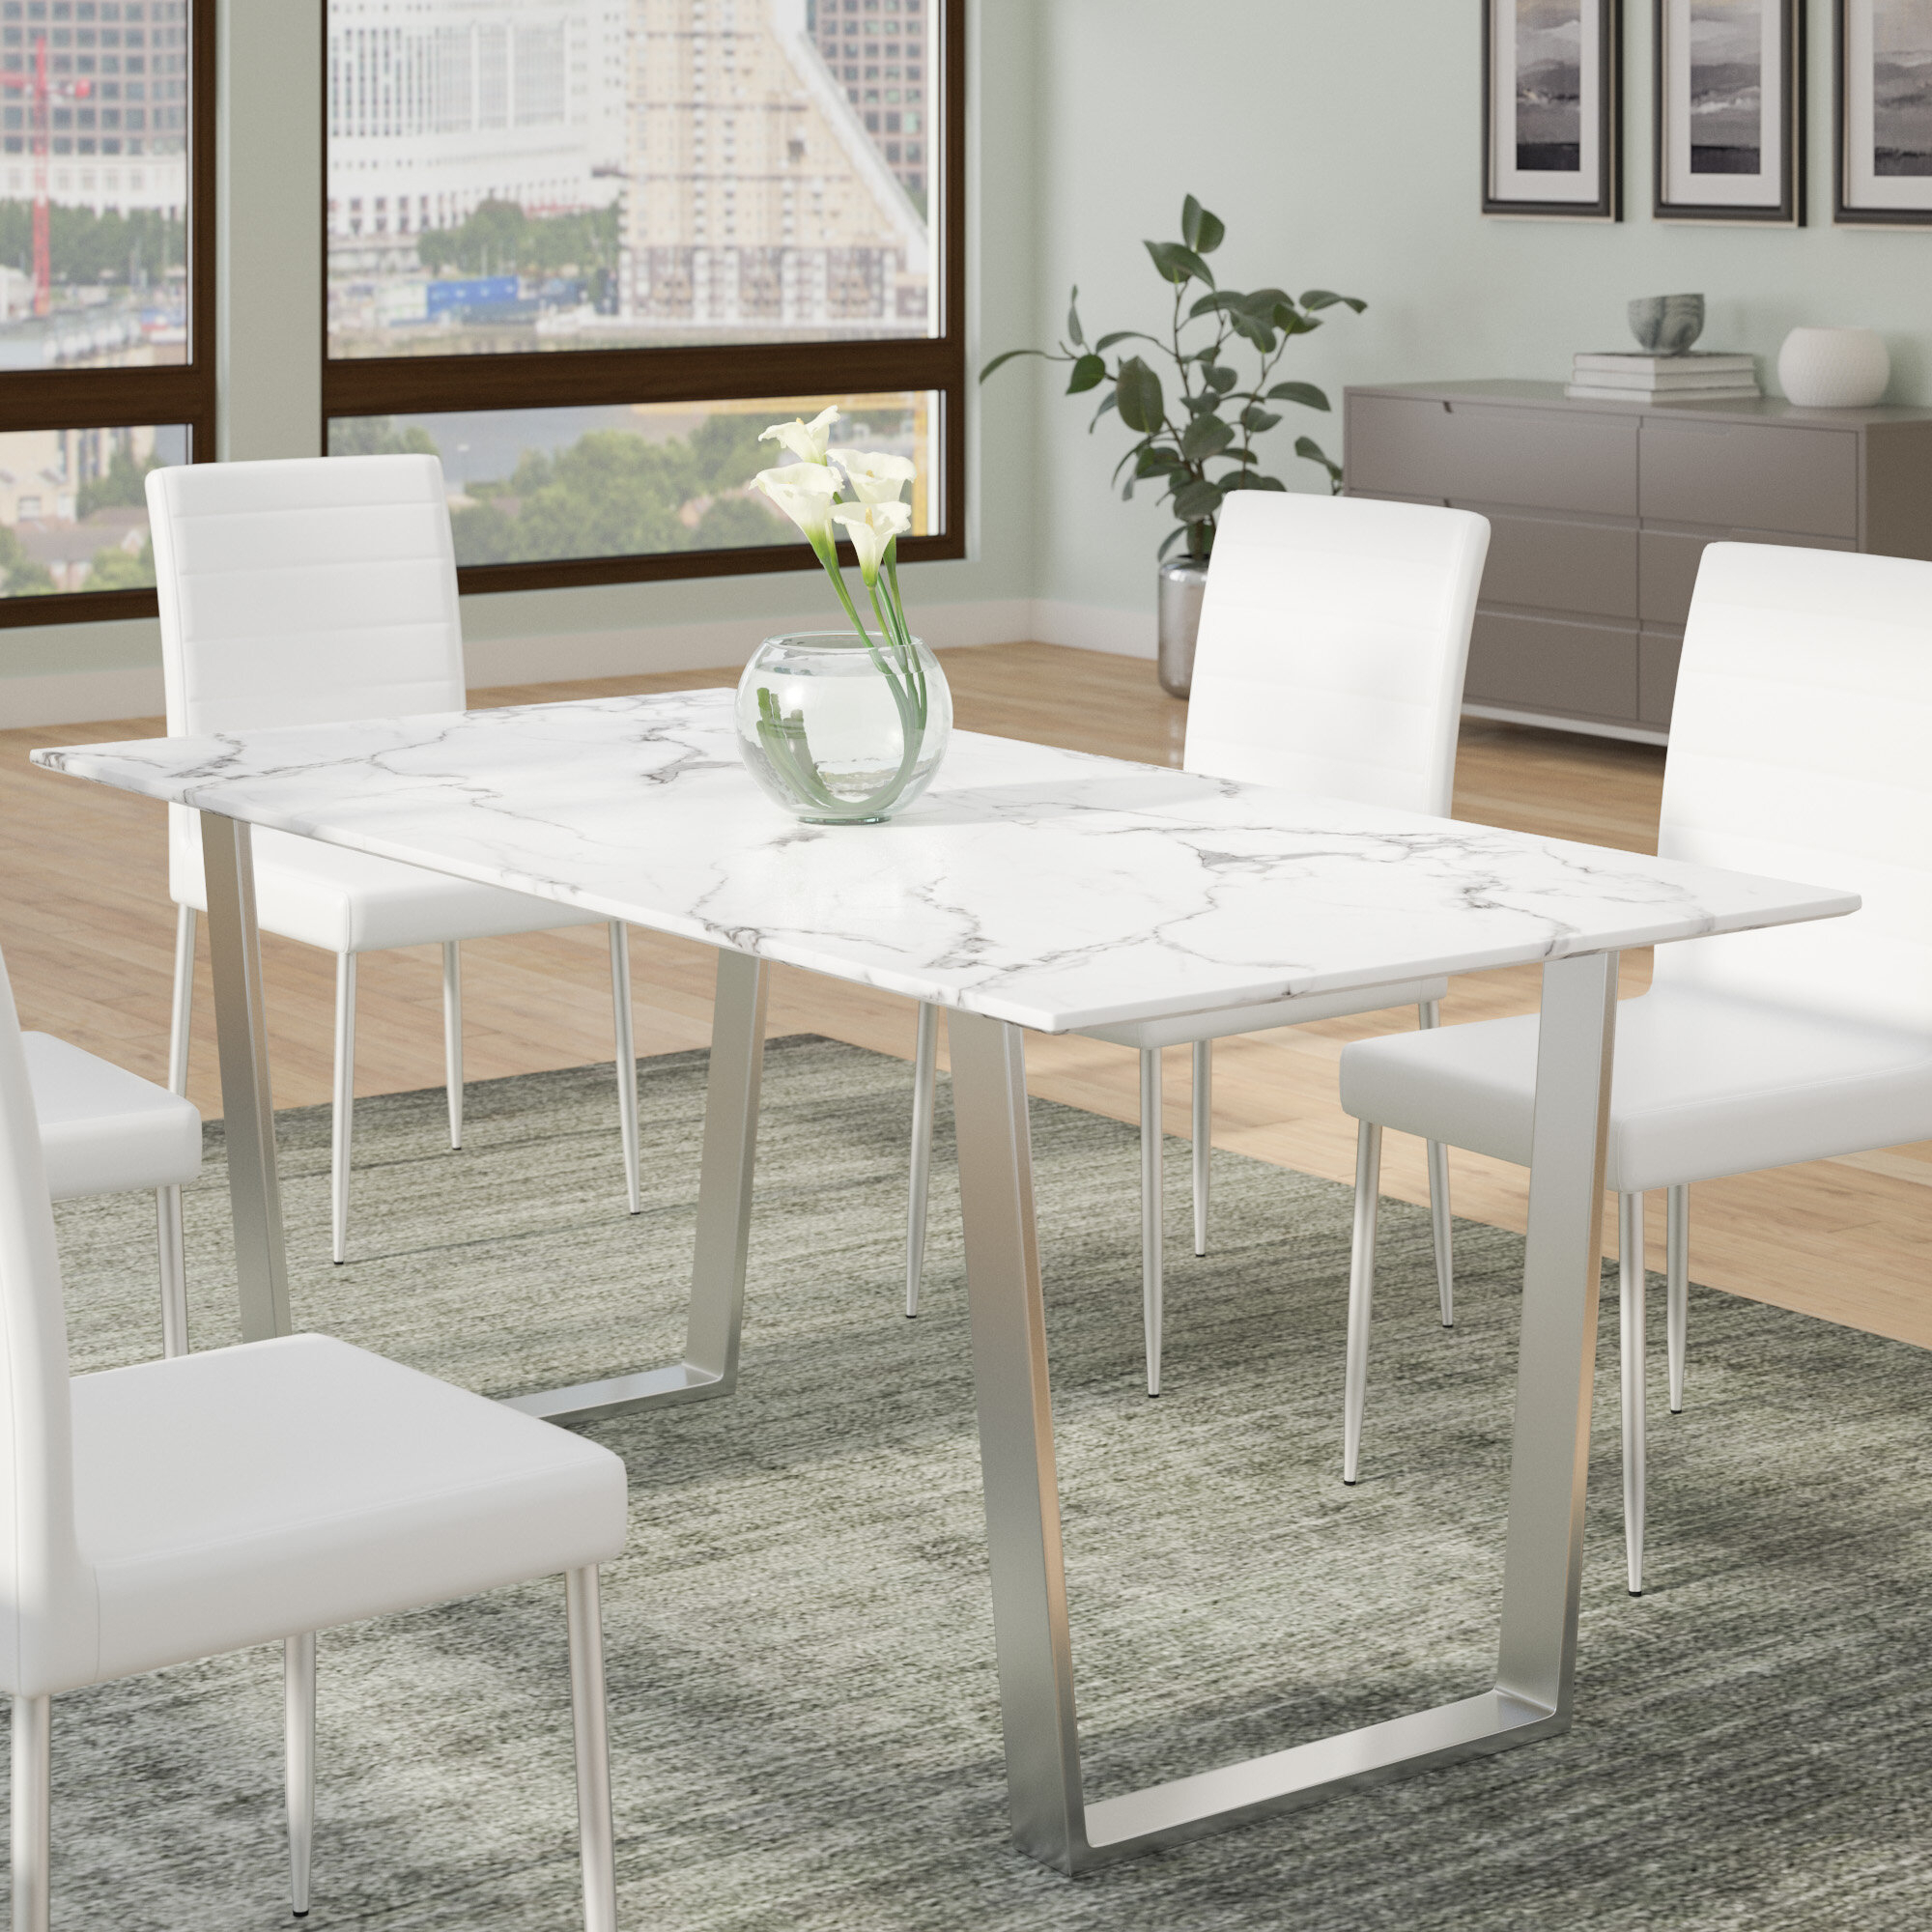 Faux Marble Dining Table You Ll Love In 2021 Visualhunt